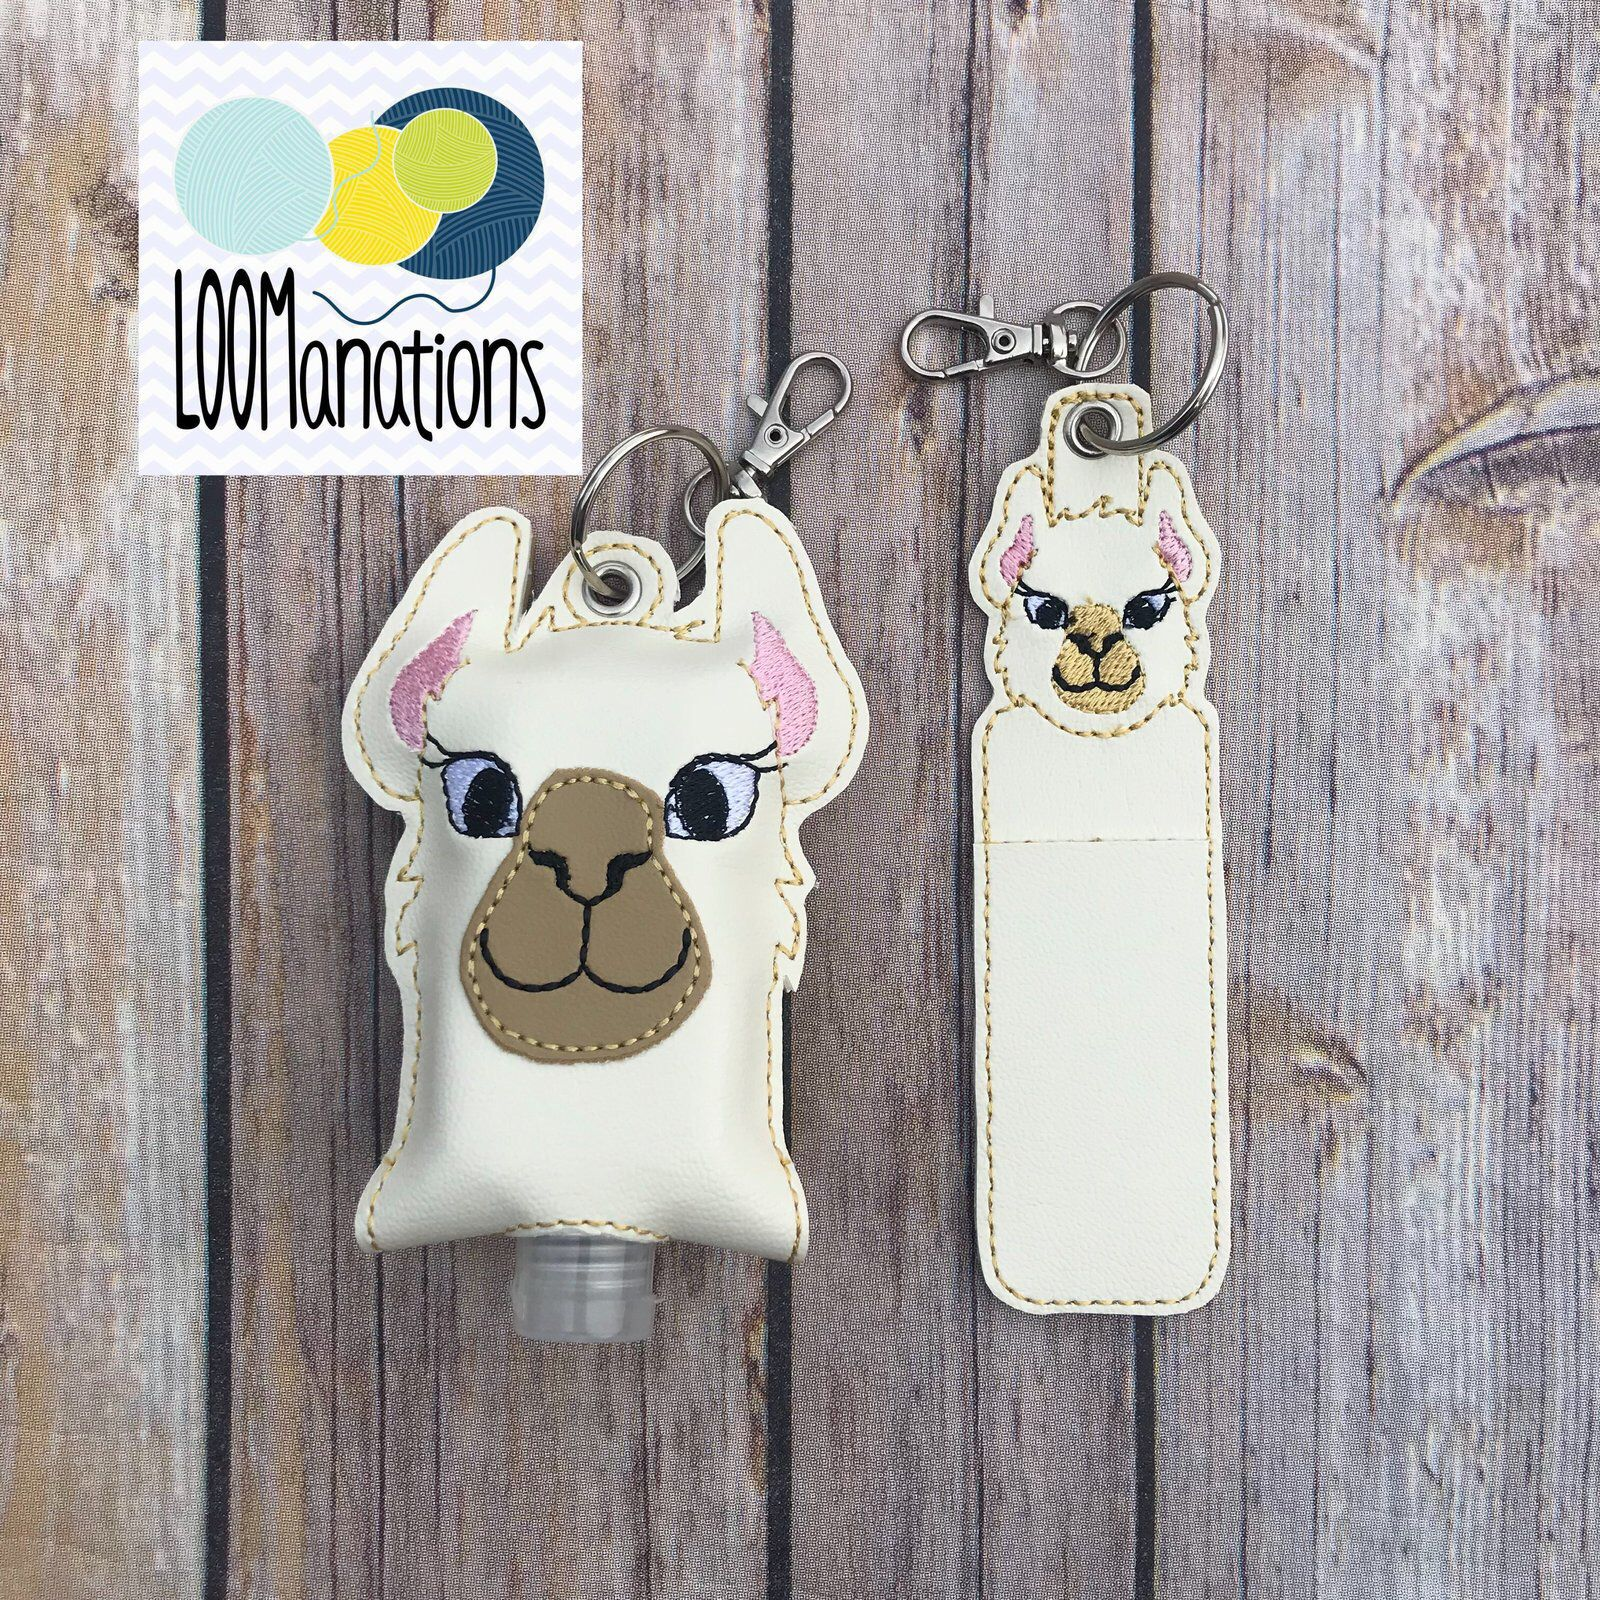 Llama Hand Sanitizer Case And Lip Balm Holder By Loomanations On